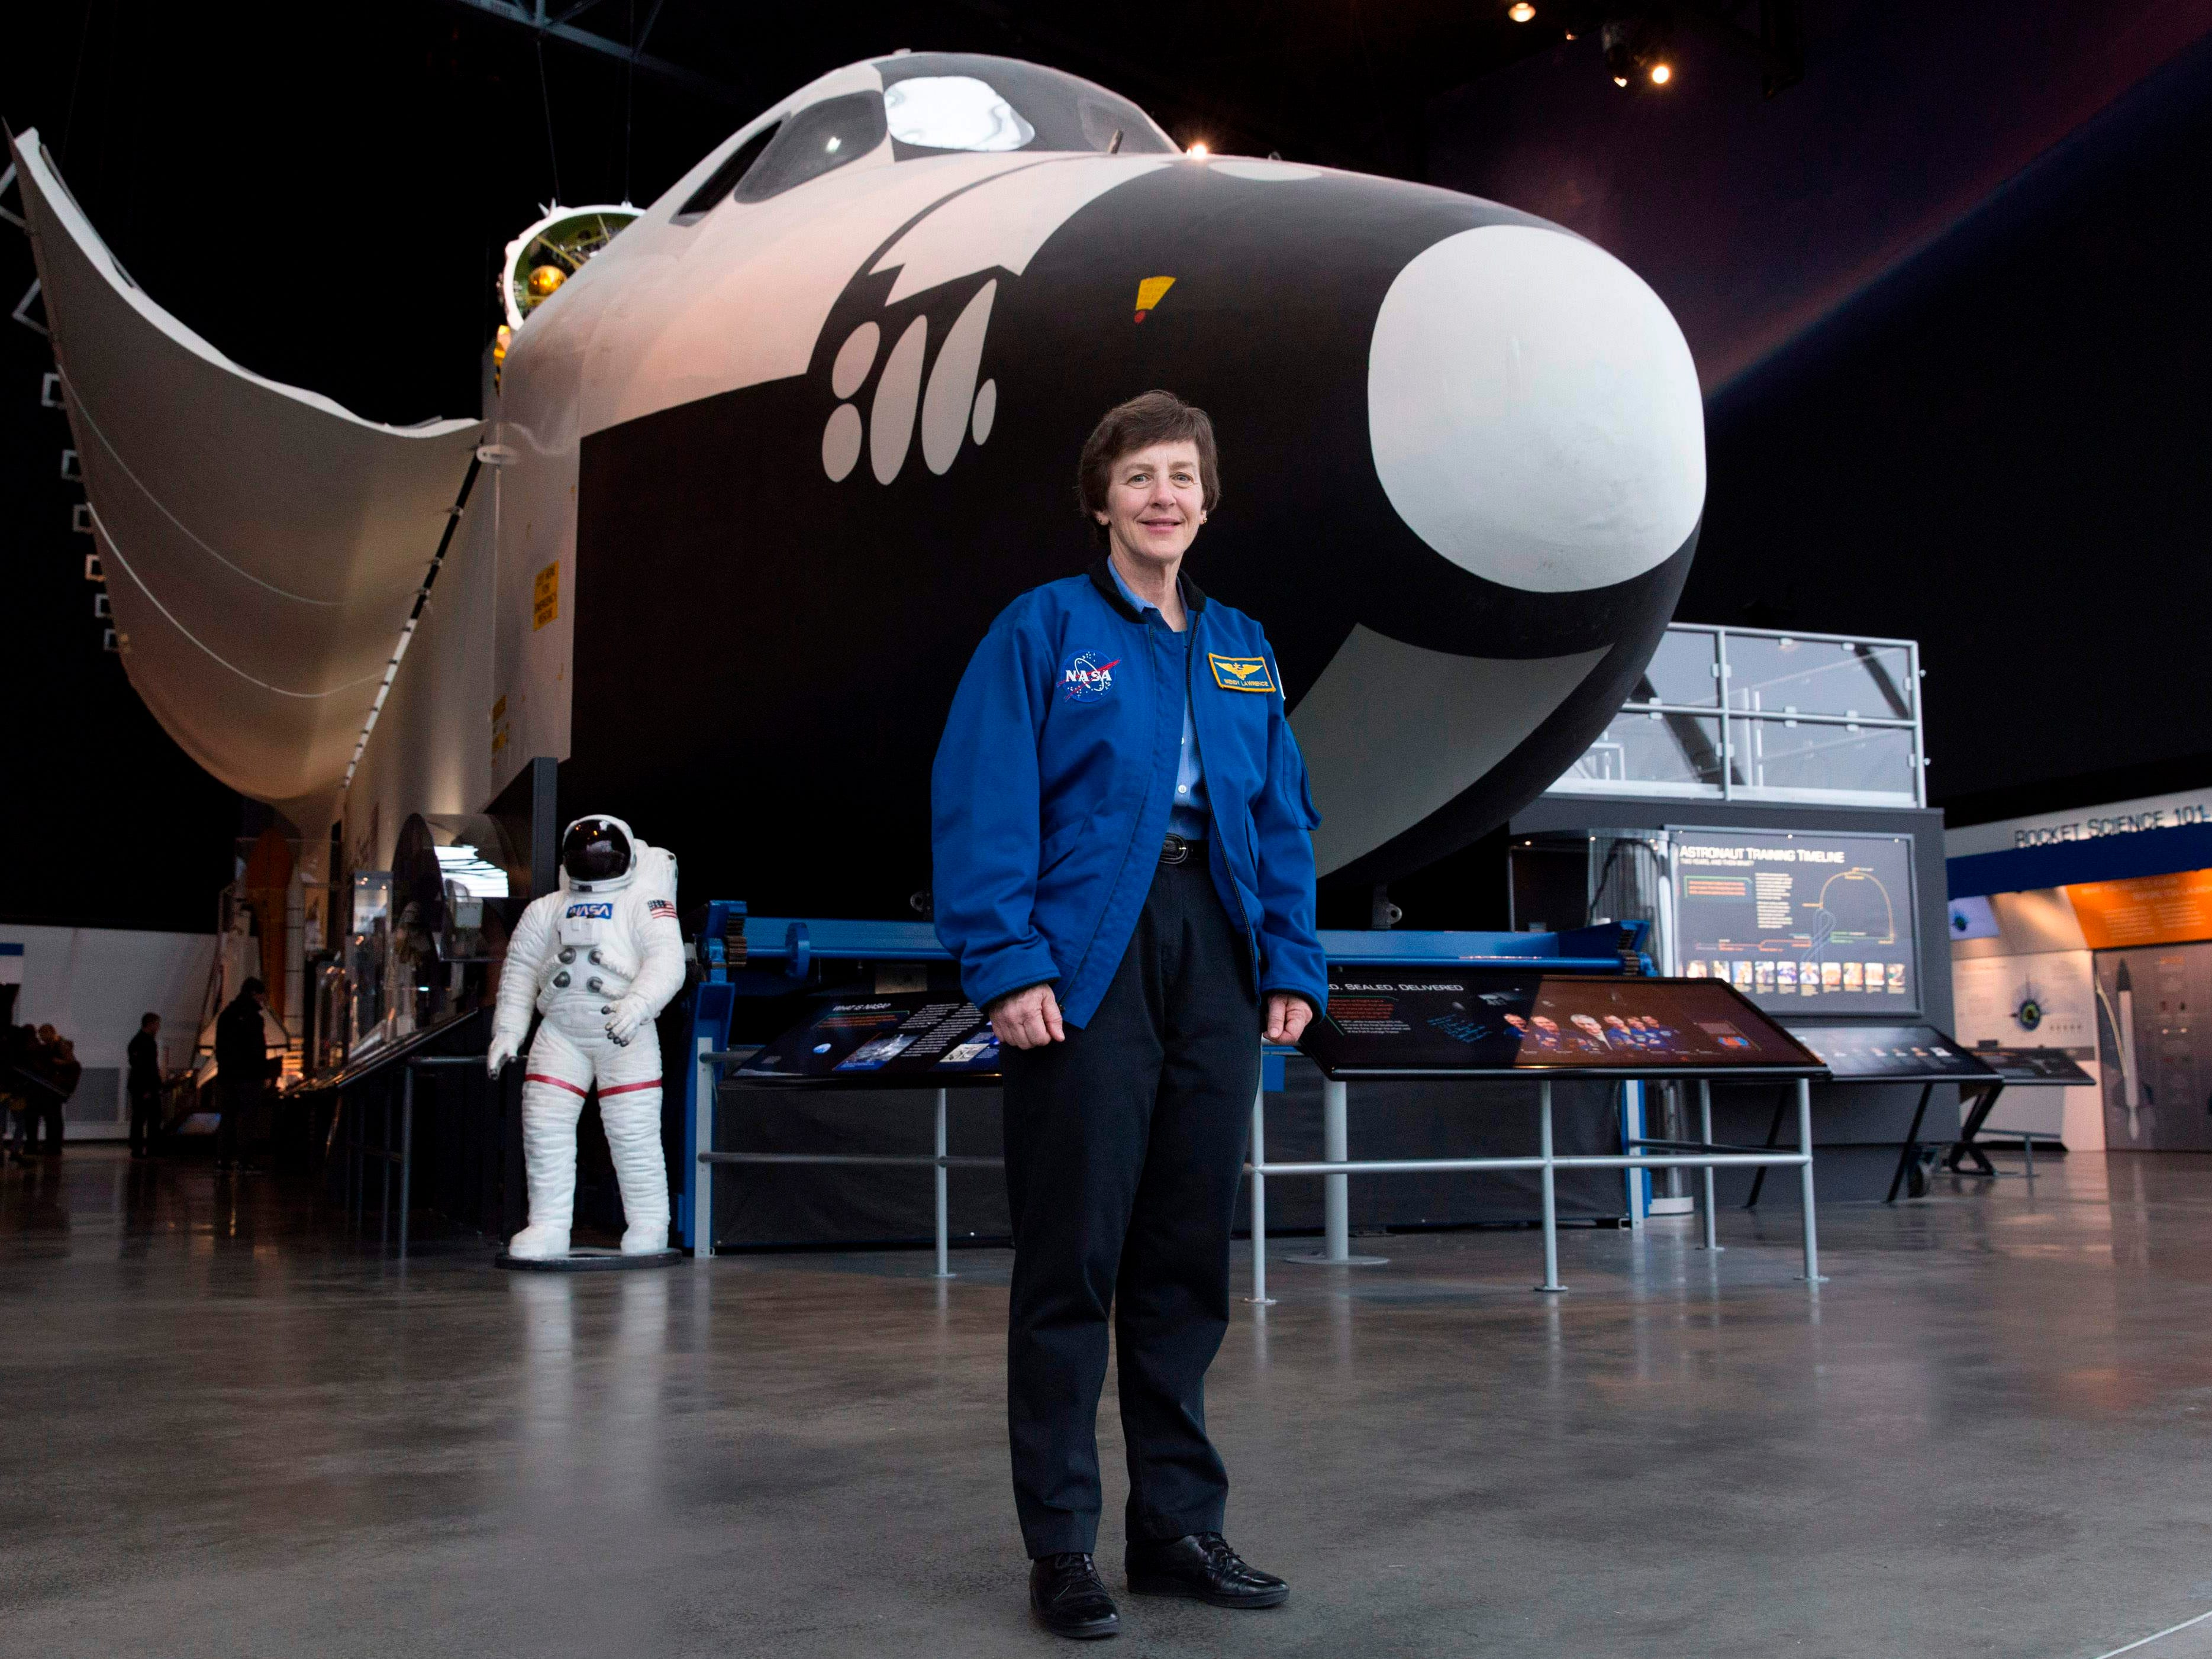 Wendy Lawrence, 58, a retired US Navy captain and former NASA astronaut, is pictured on the Space Shuttle trainer that was used for astronaut's training at the Museum of Flight in Seattle, Washington on February 28, 2018. She was the first female graduate of the United States Naval Academy to fly into space. Her first mission was on the STS-114 in 1995, and then again in 1997, 1998, and 2005.